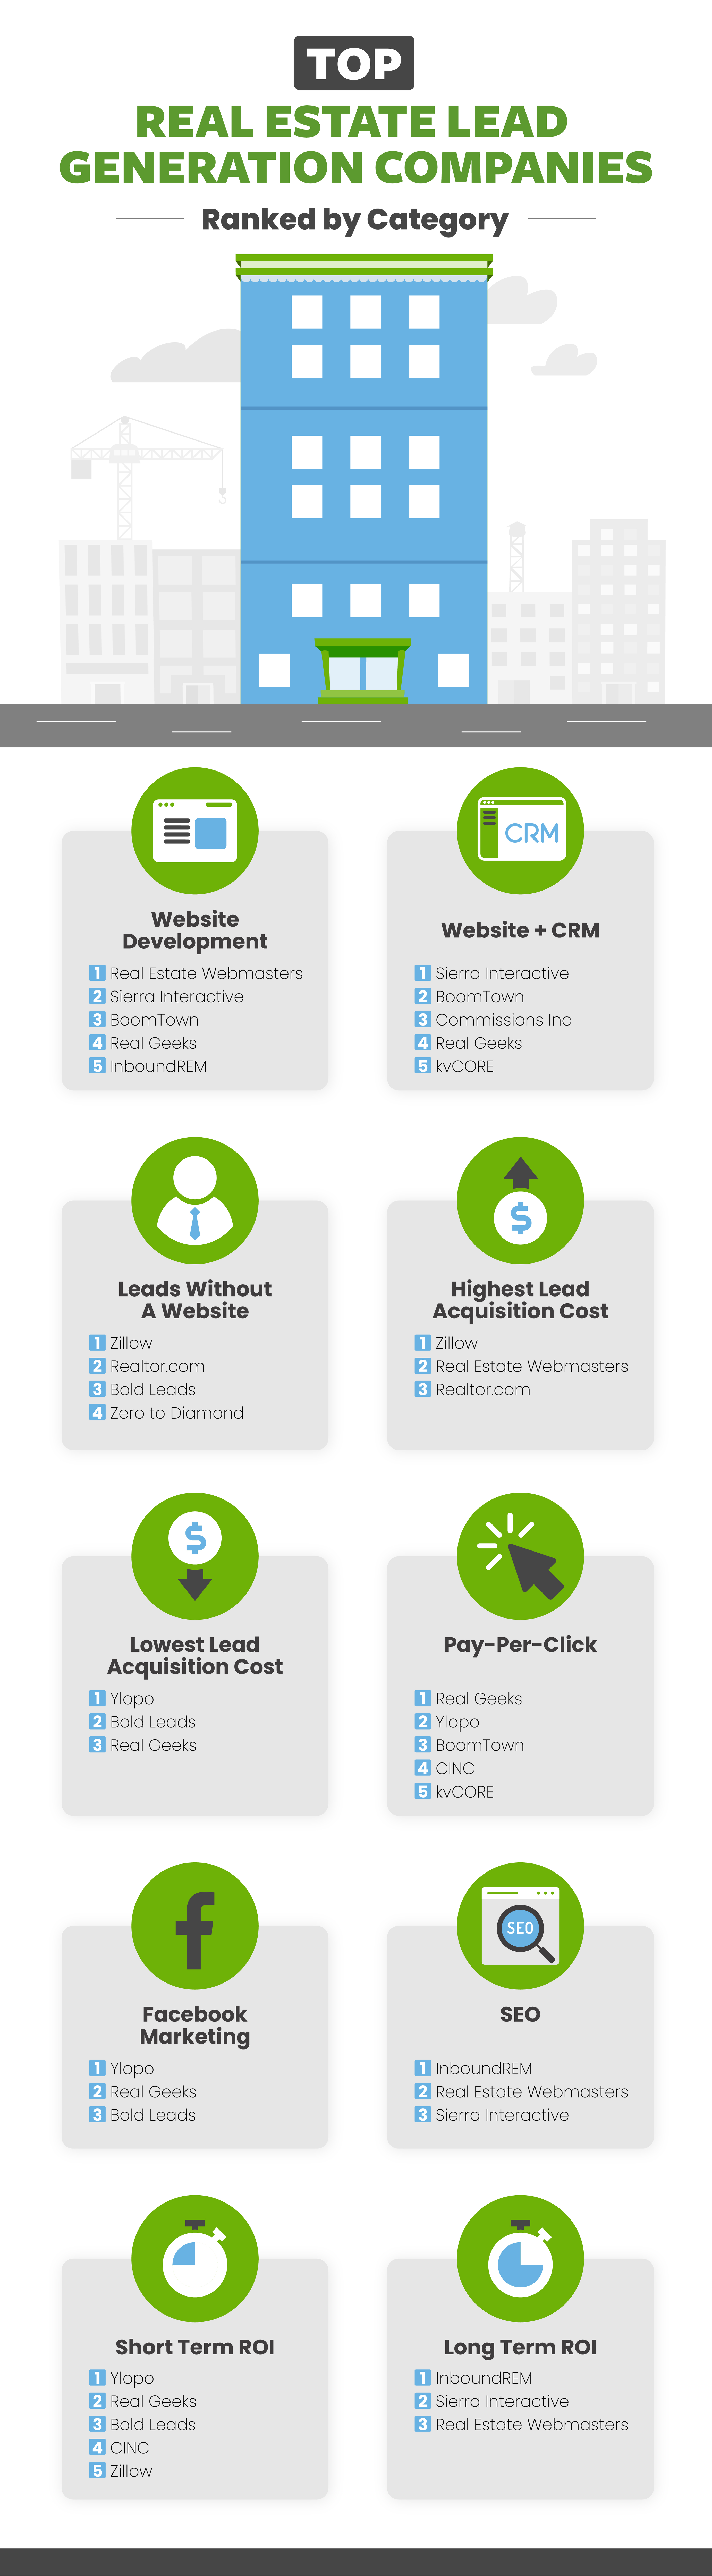 infographic of the best real estate lead generation companies (rankings)